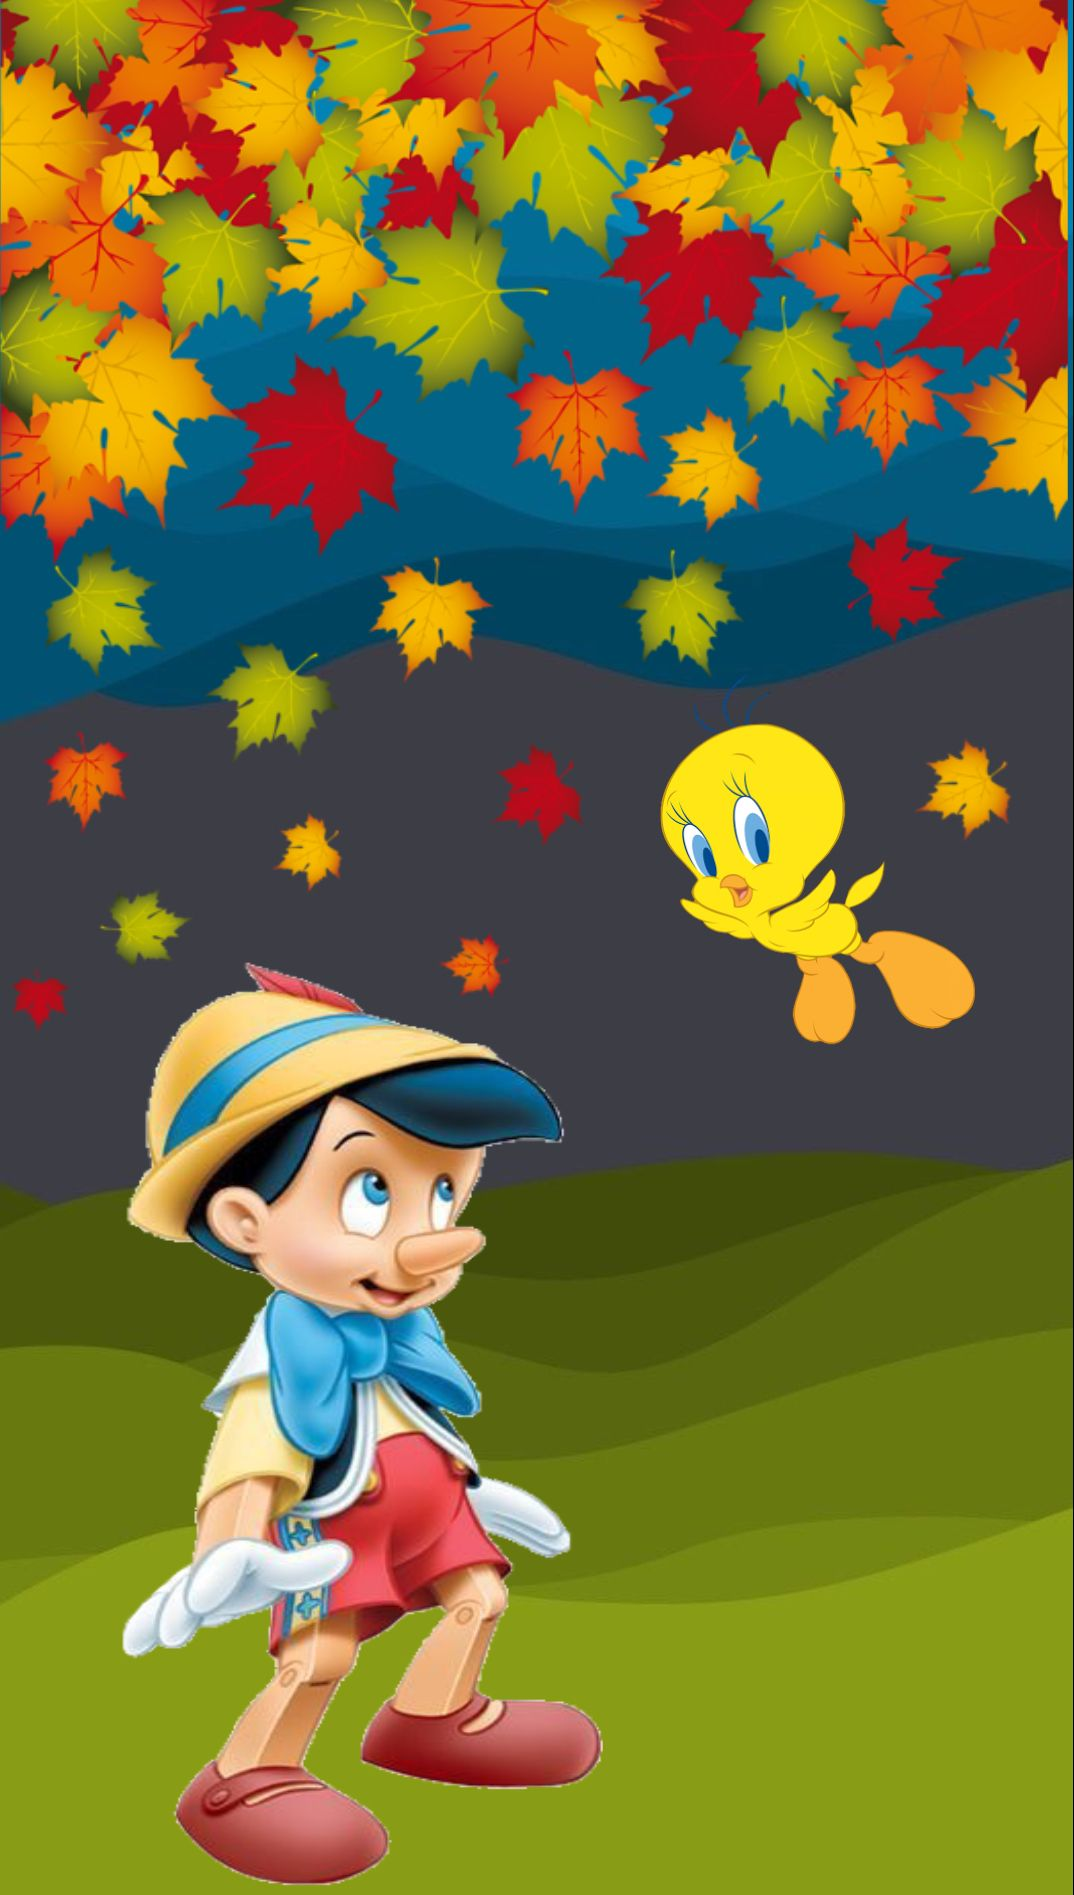 Pin By Noha El Sherif On Iphone Wallpaper Cartoon Wallpaper Cute Wallpapers Fall Wallpaper Wallpaper iphone x czs